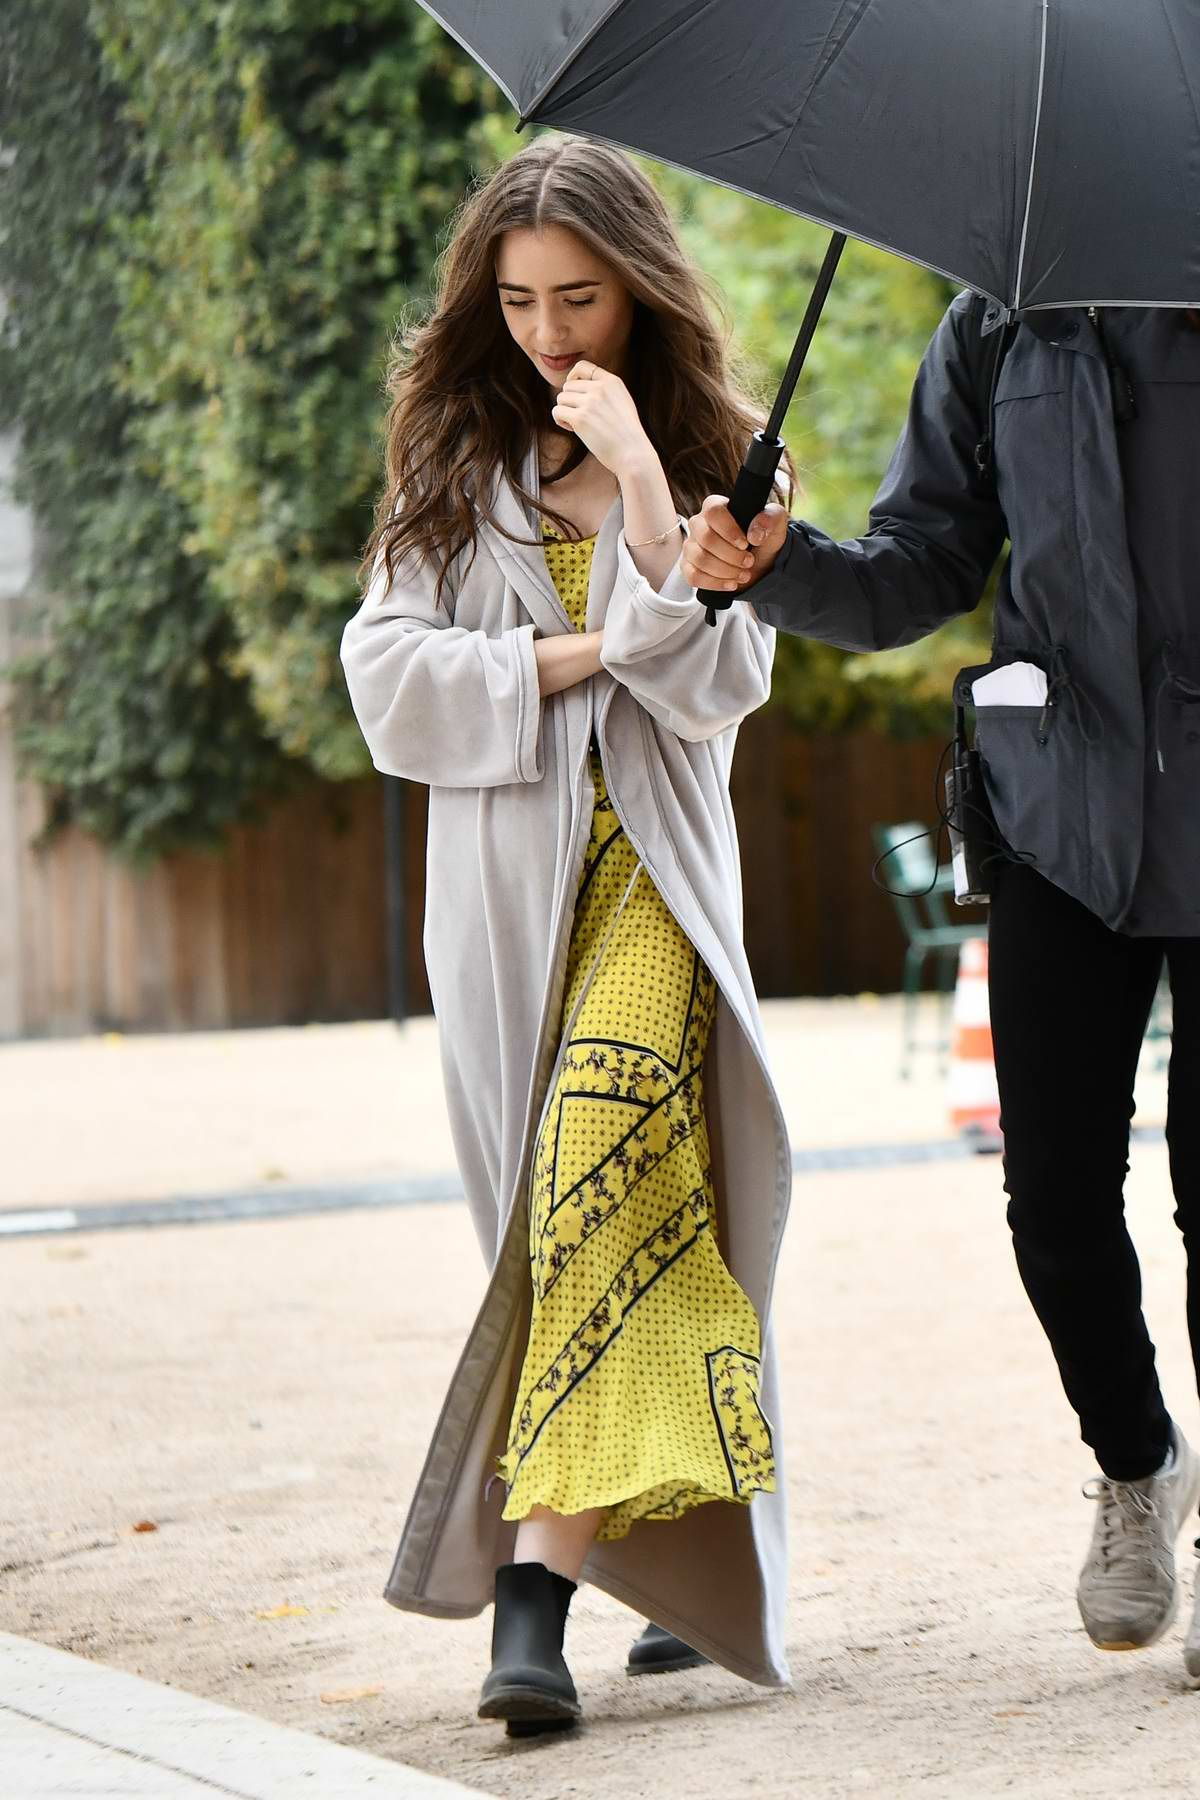 Lily Collins spotted on the set of her new TV show 'Emily in Paris' in Paris, France